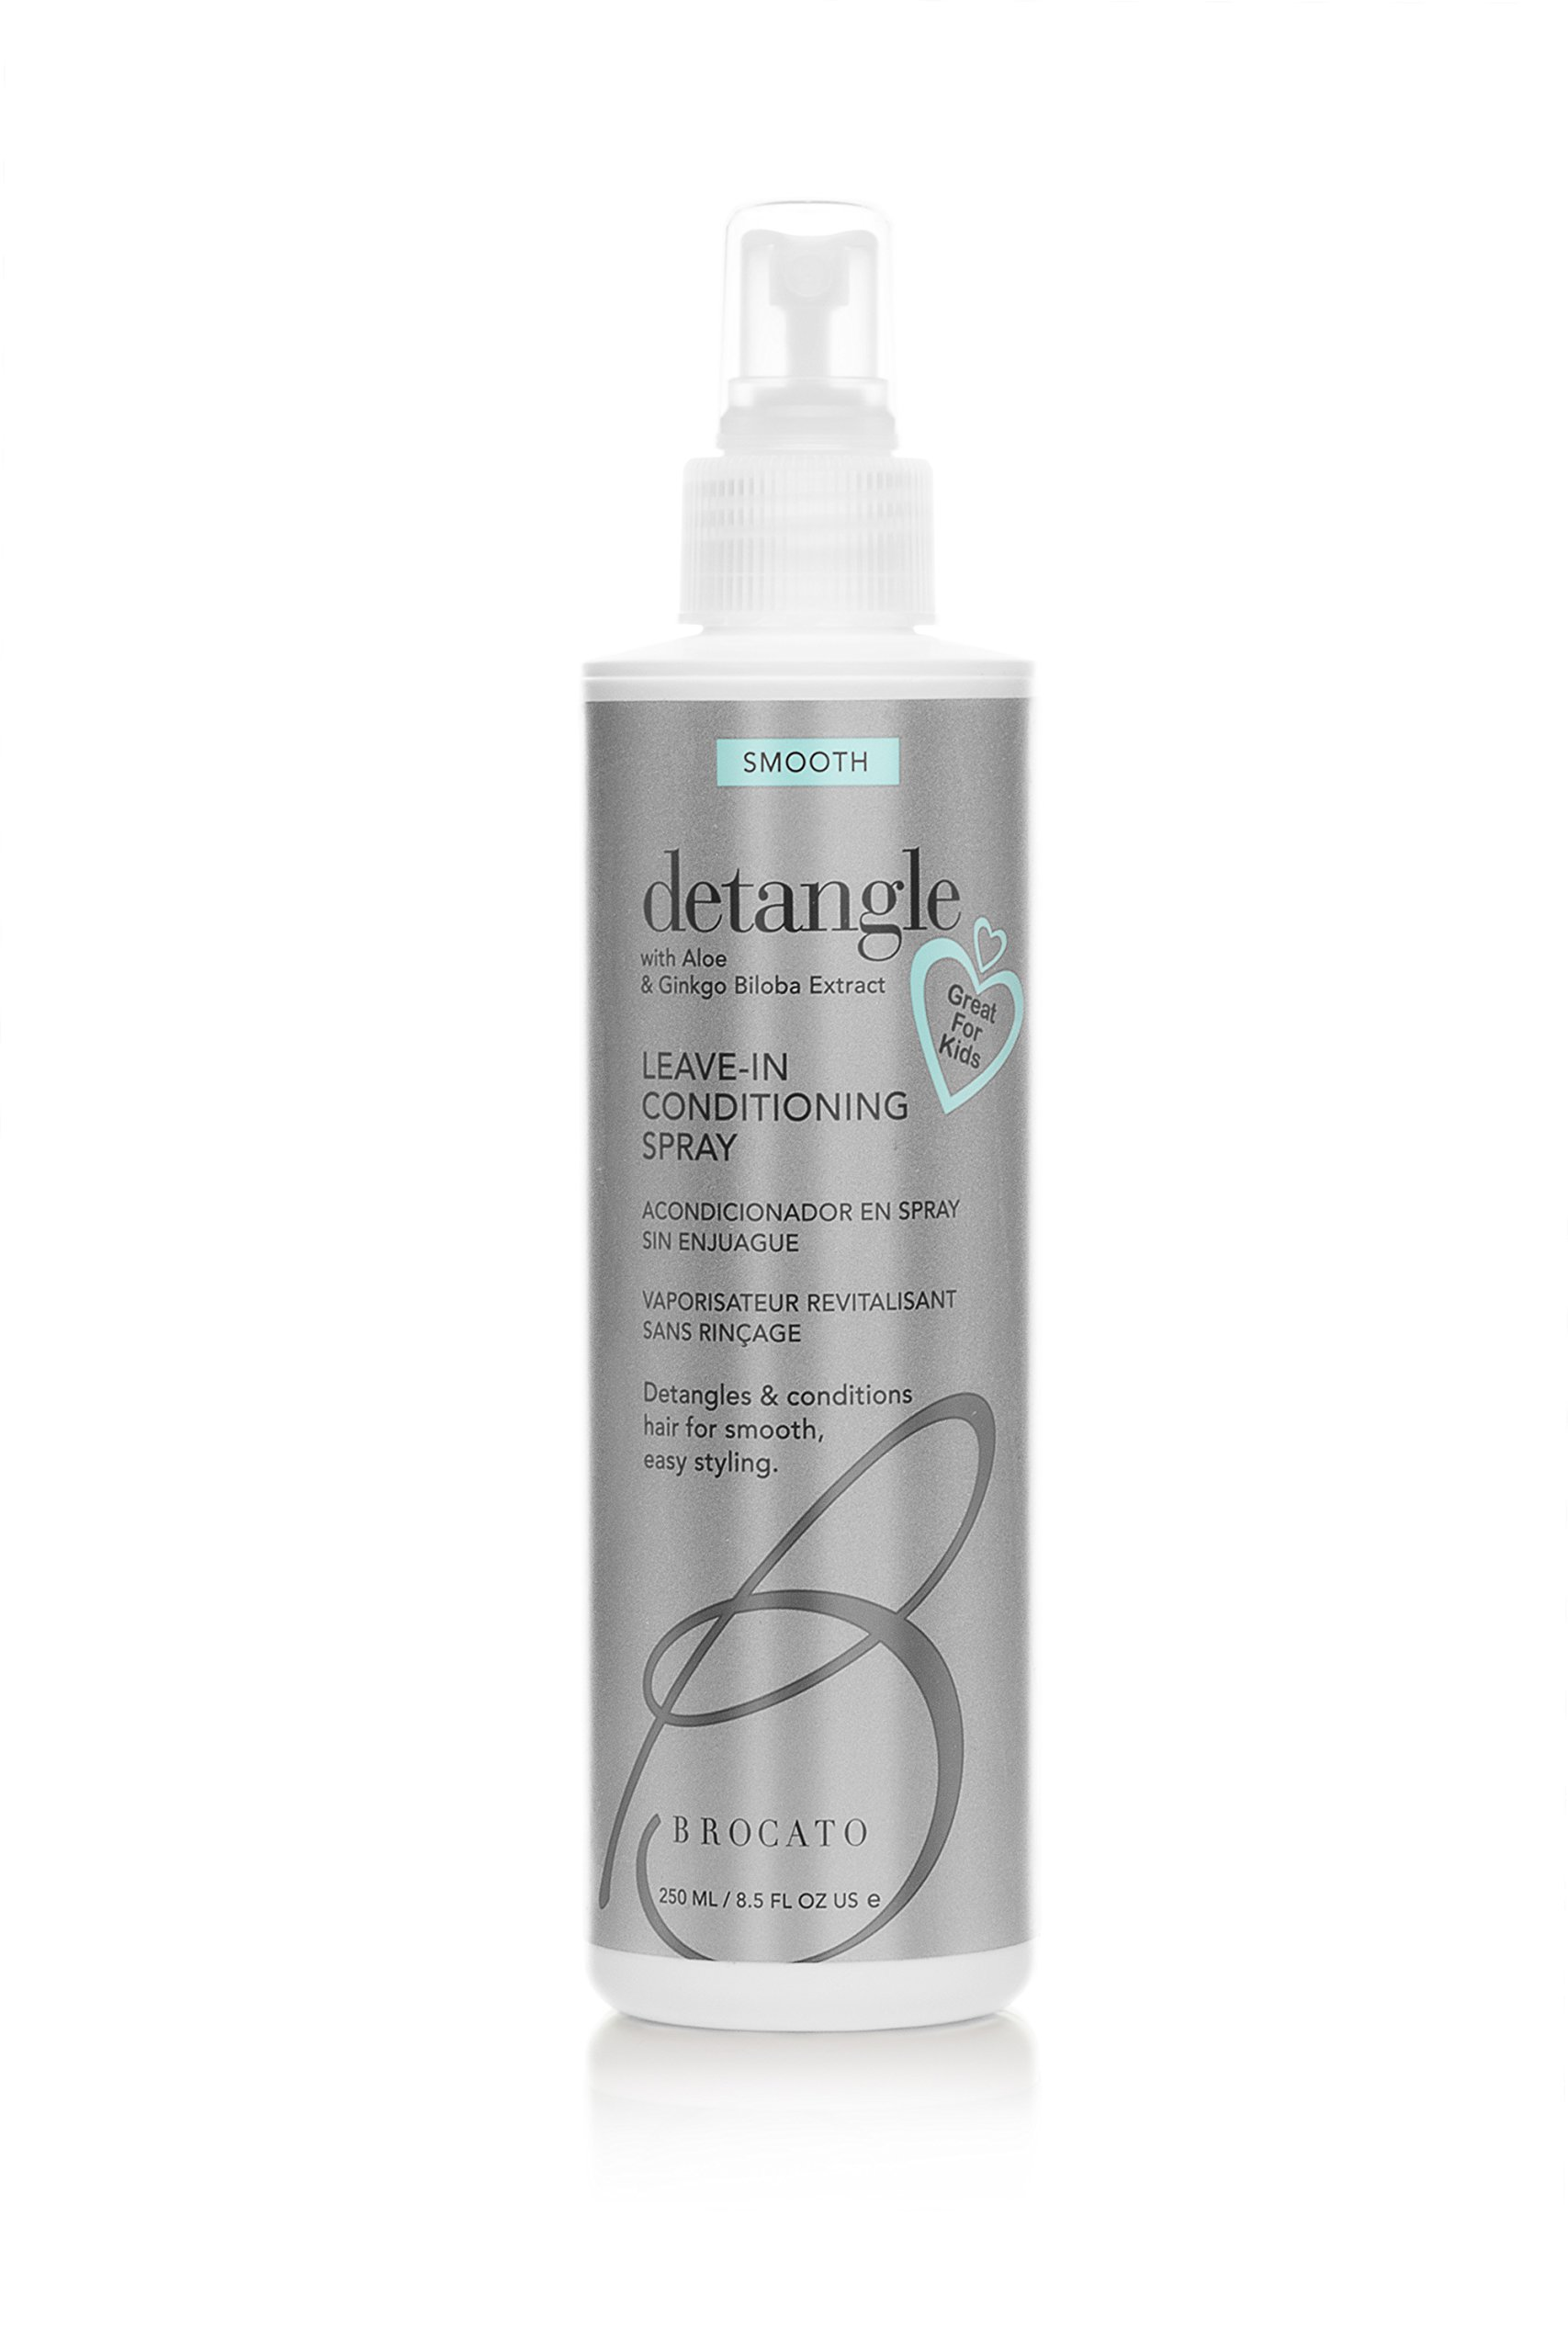 Brocato Detangle Leave In Conditioner Spray: Hair Detangler & Conditioning Spray for Women to Smooth Hair, Tame Frizz & Provide Sun & Heat Protection - Detangling Products for All Hair Types - 8.5 Oz